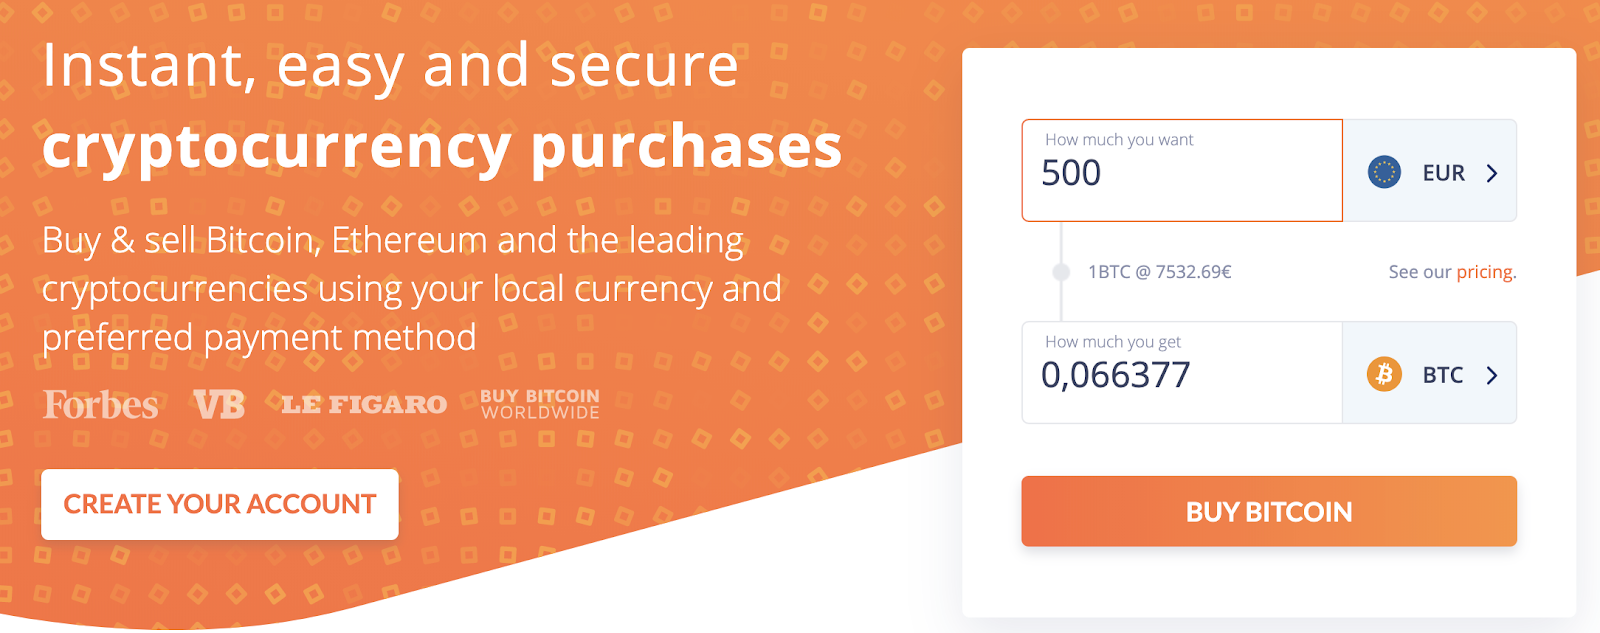 Bitit screenshot - buying many cryptocurrencies instantly